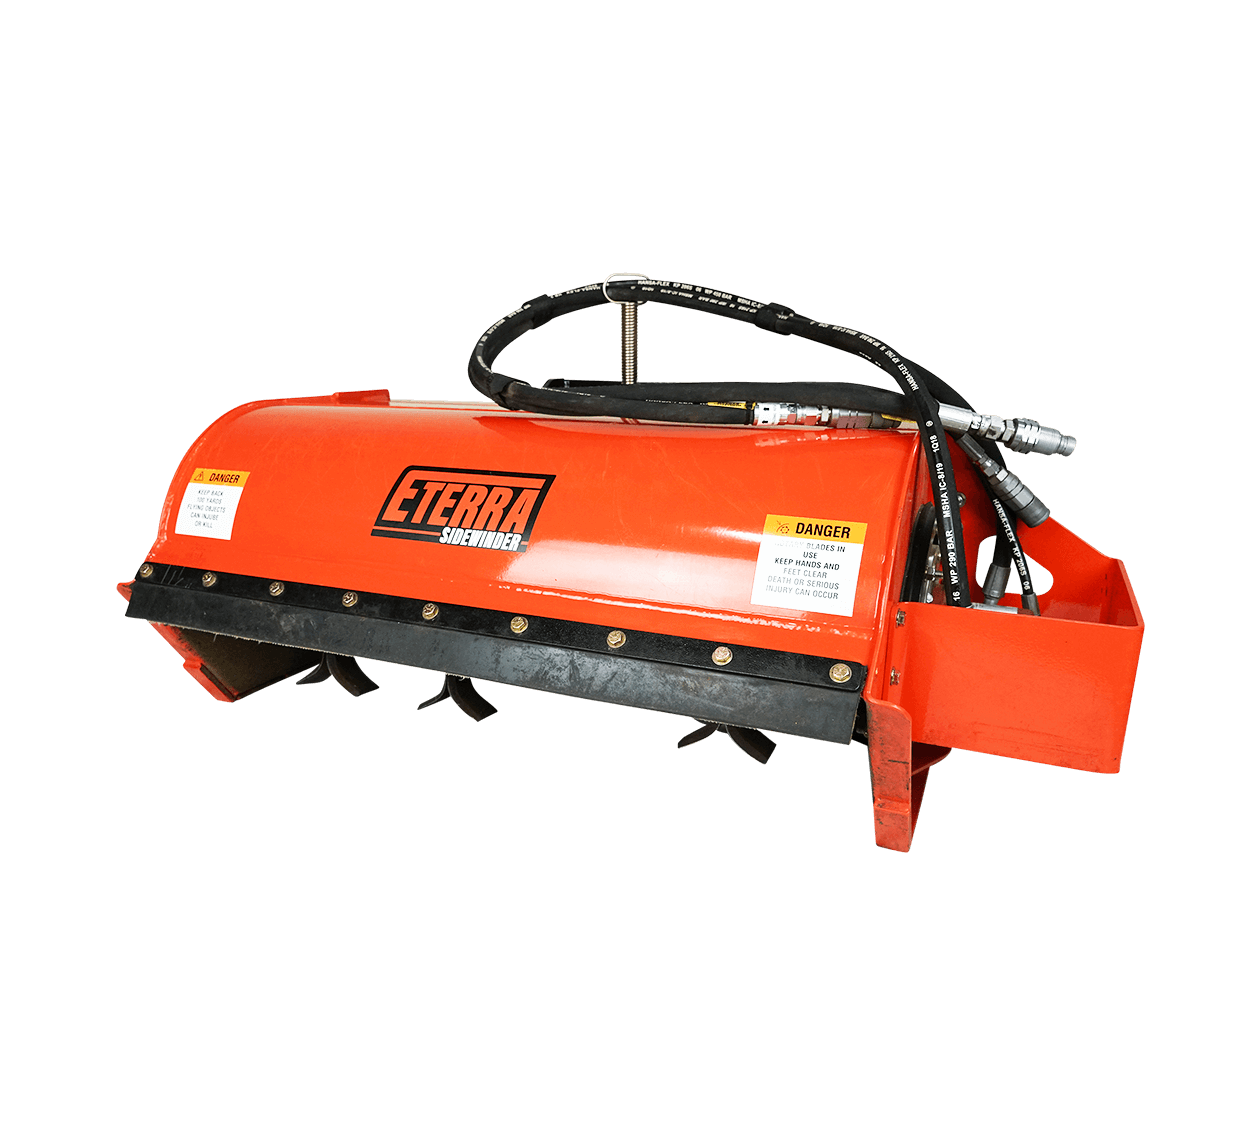 Eterra Sidewinder Mini Skid Steer flail mower white background